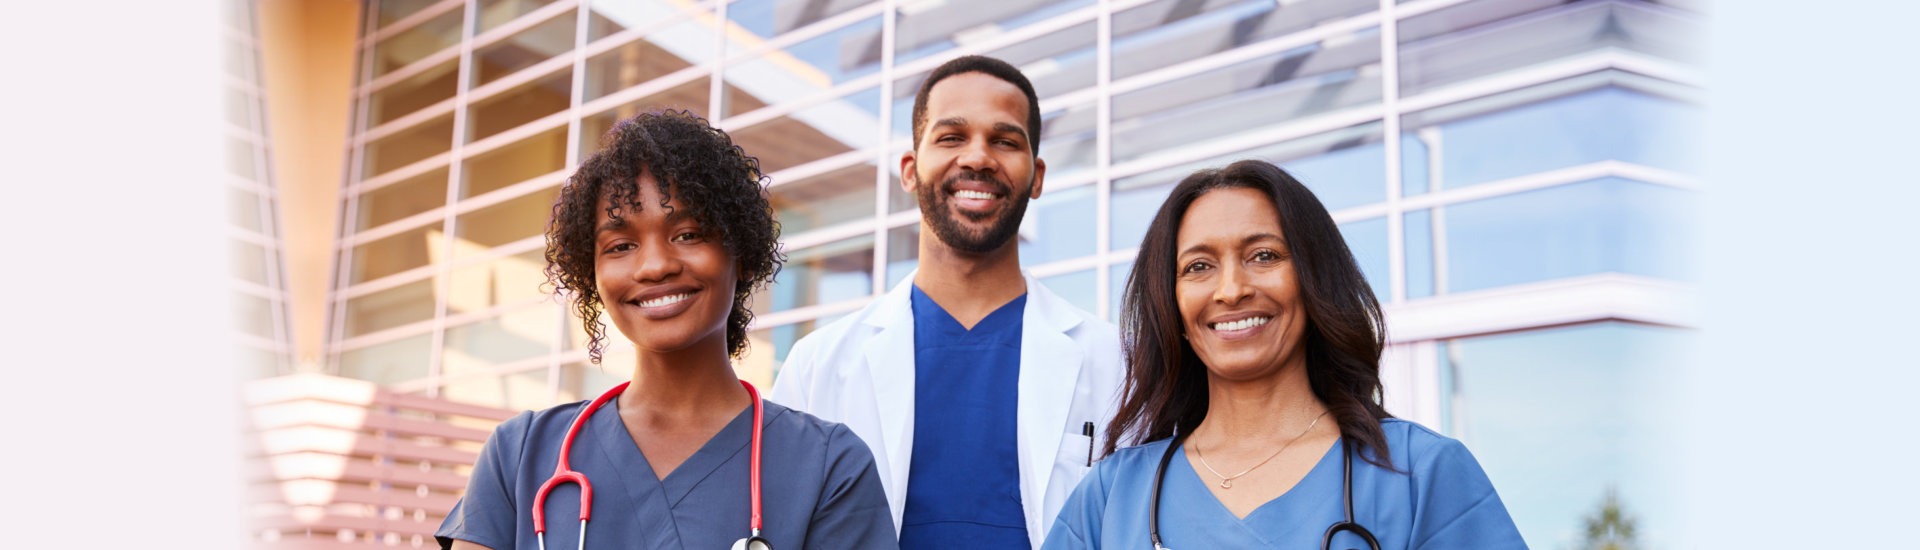 doctor with two nurses smiling